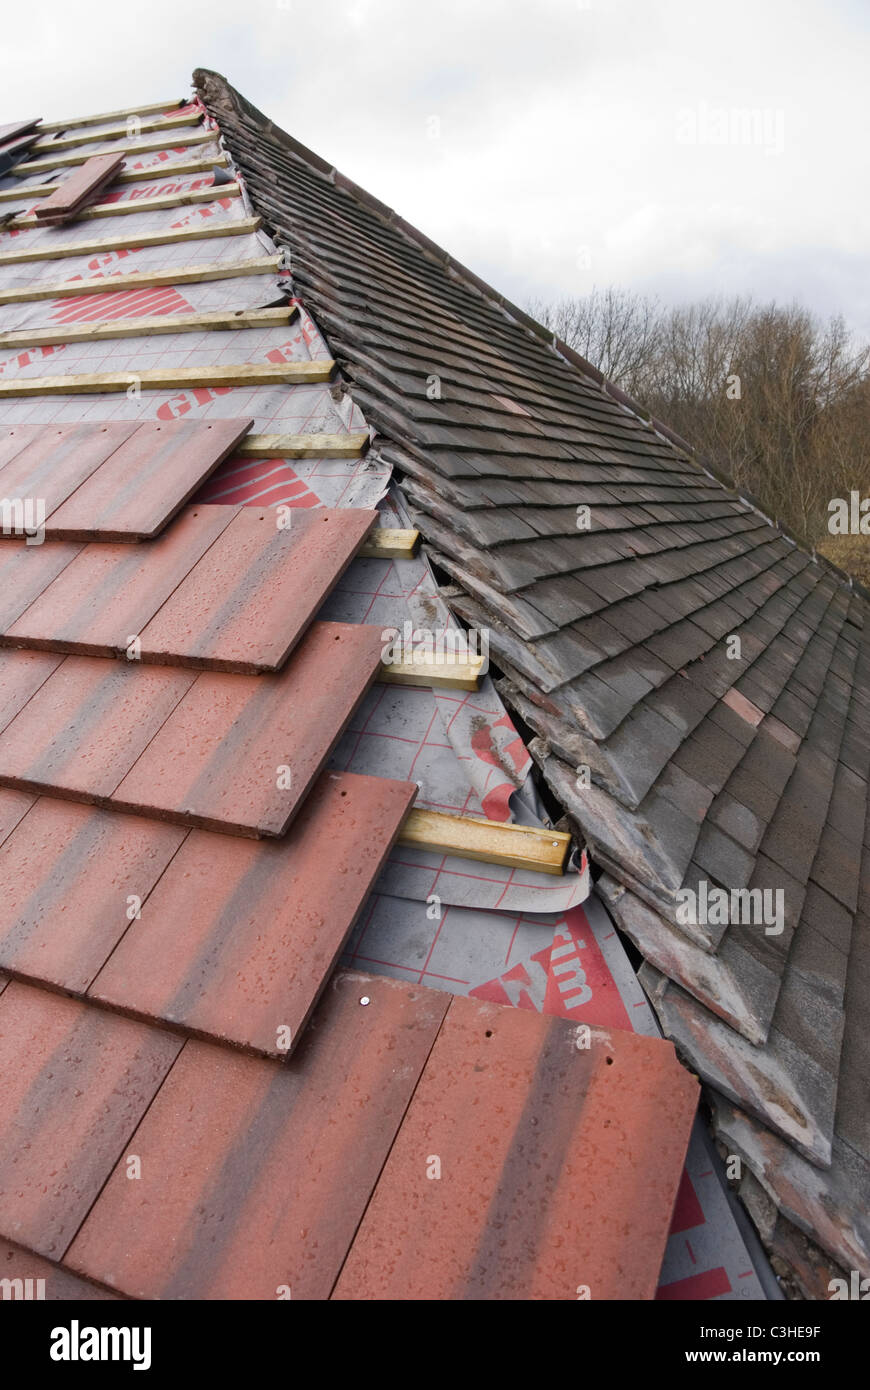 Re Roofing Detail With Old Rosemary Roof Tiles And New Larger Modern Marley  Tile, By Ontop Roofing, Sheffield, England